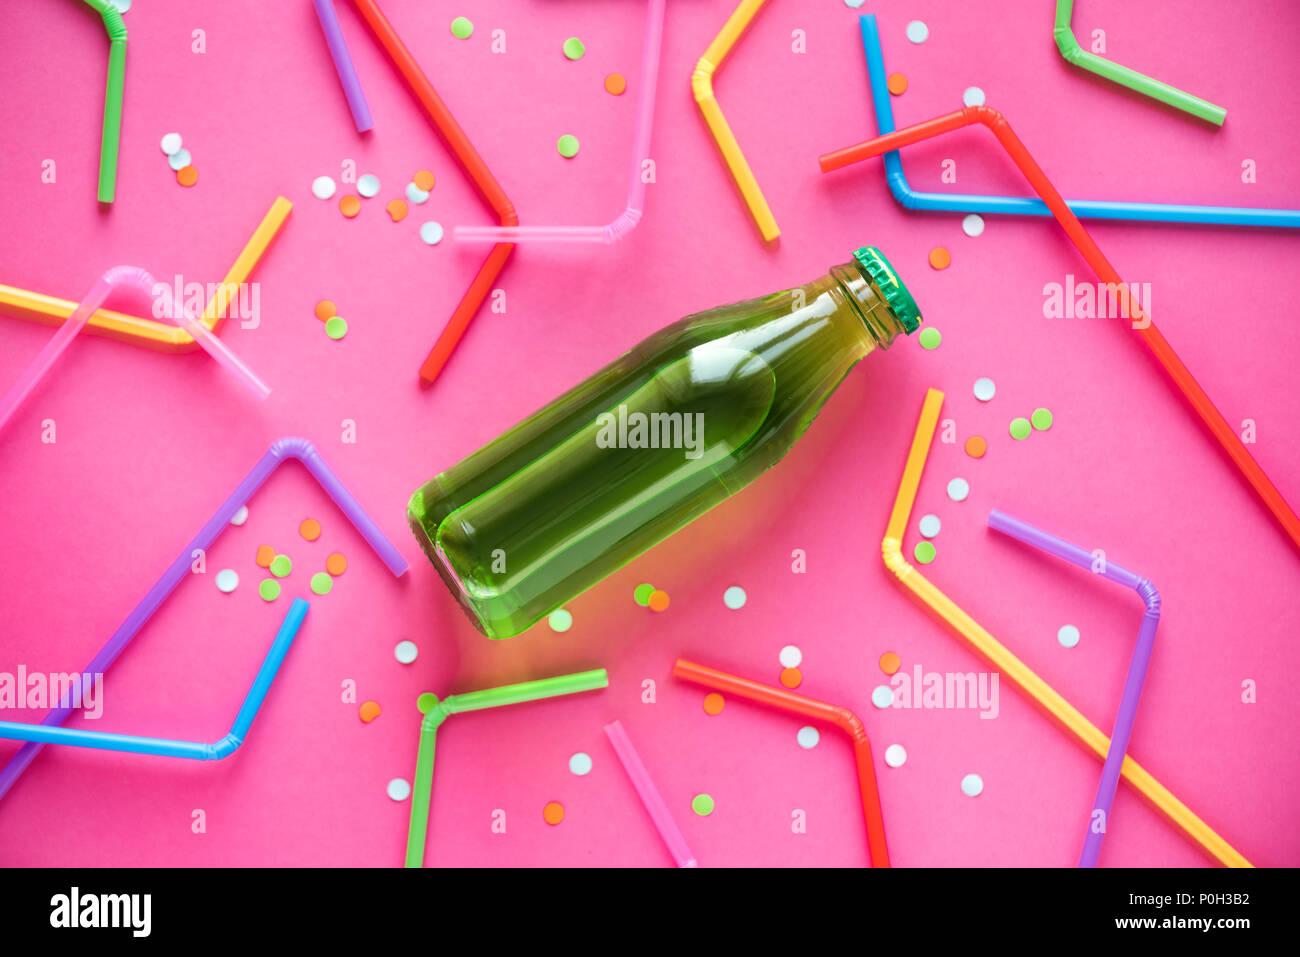 Cold green drink with straws and confetti on bright pink background and copy space for text. Summer party, happy vacation and fun concept, top view. - Stock Image